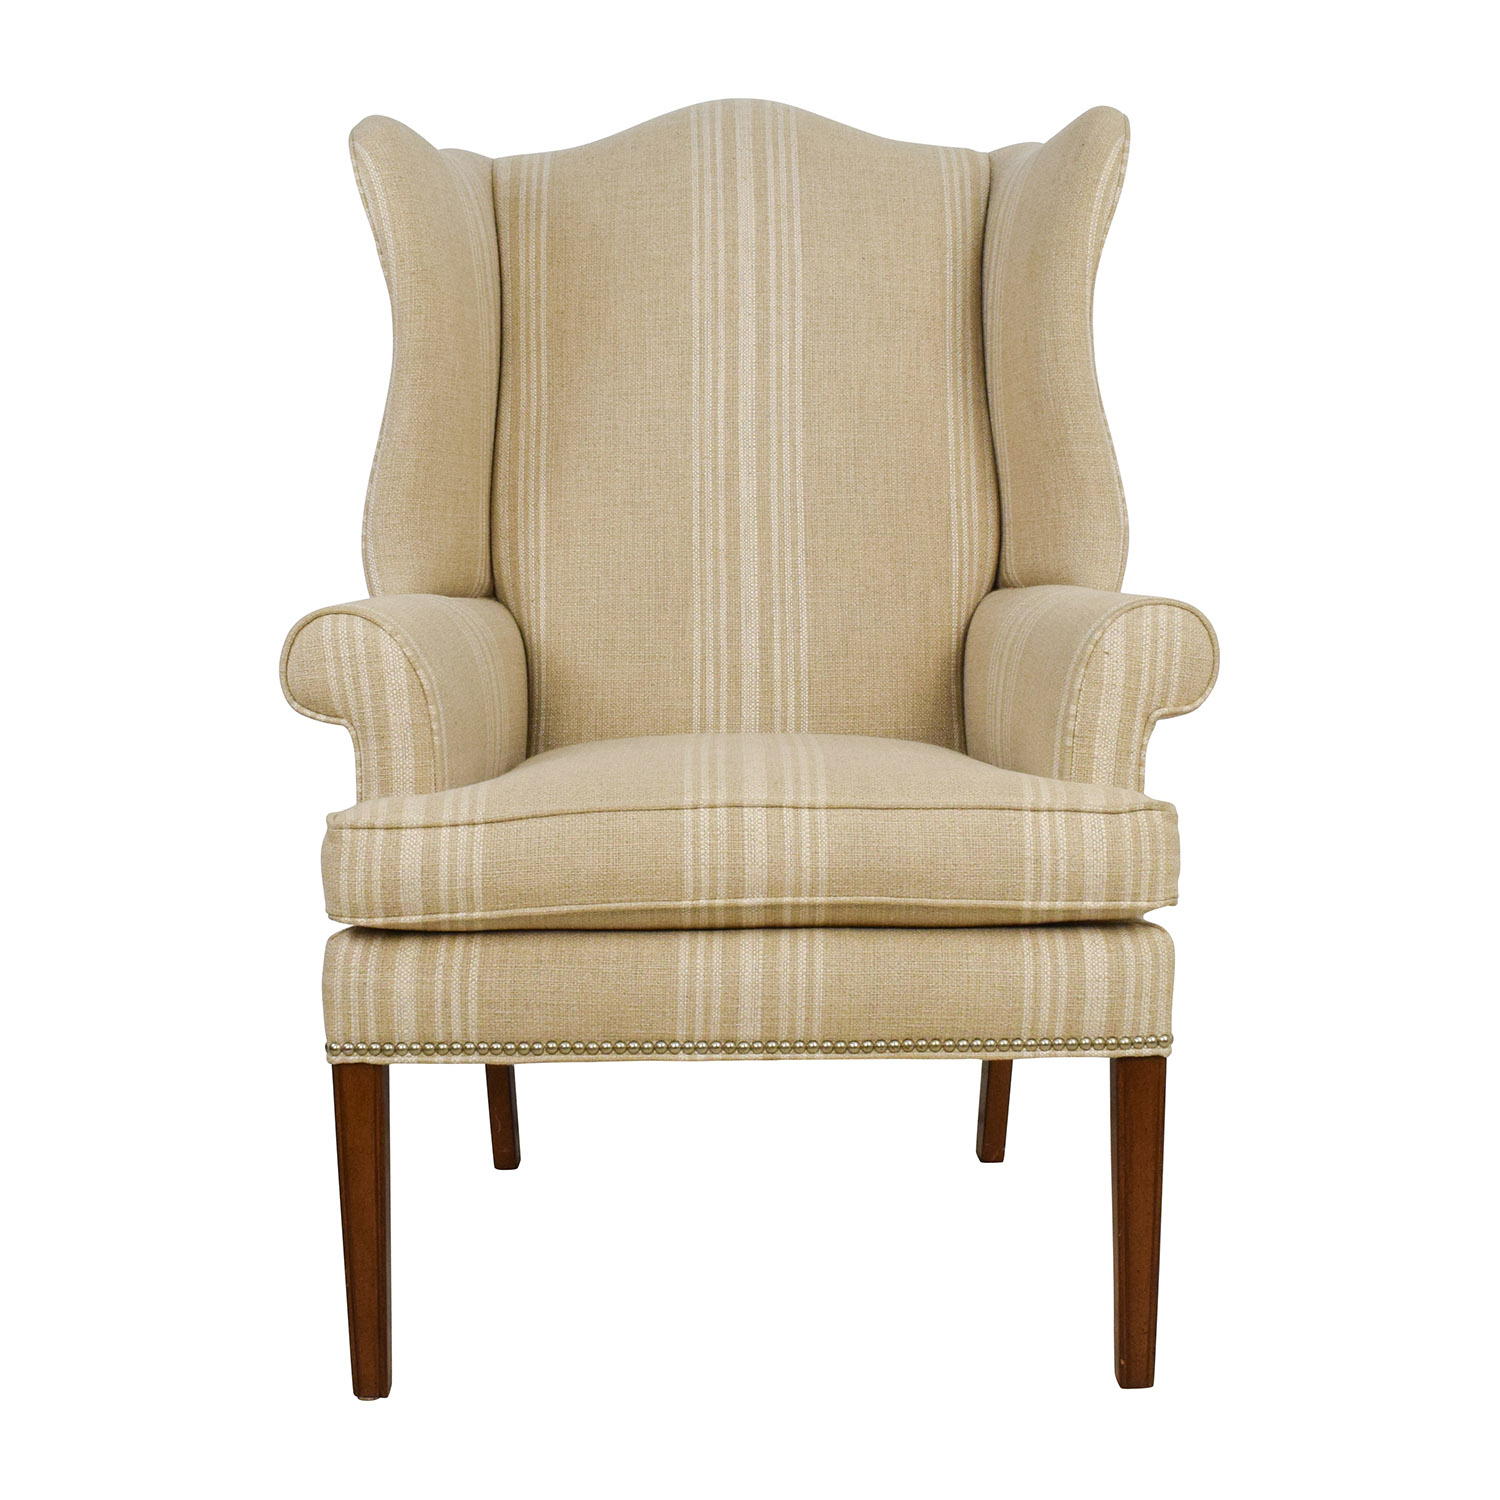 88 Off Ethan Allen Ethan Allen Skylar Stripped Wing Chair Chairs